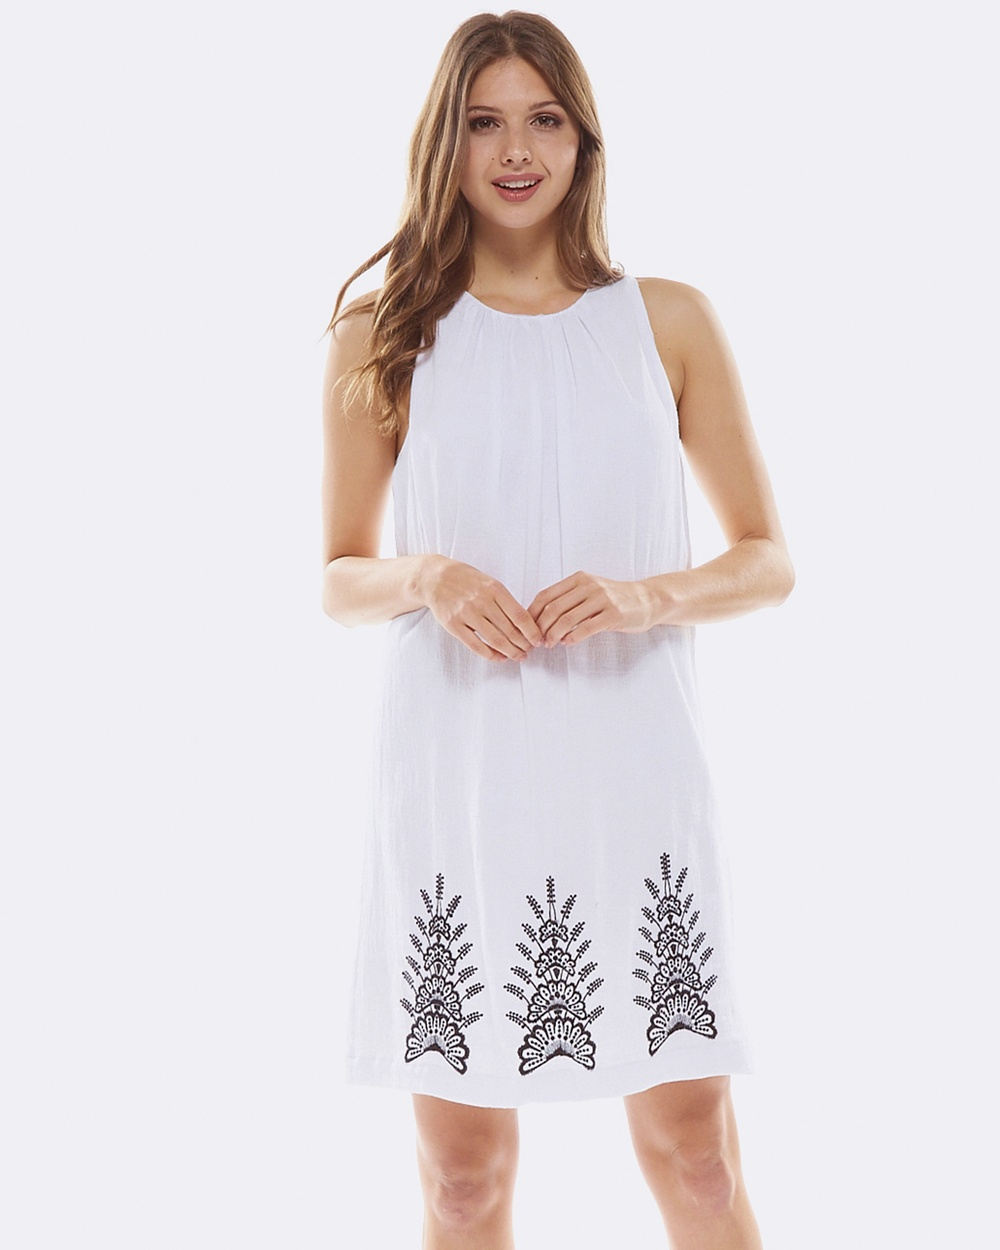 Deshabille Seminyak Dress White Dresses White Seminyak Dress White